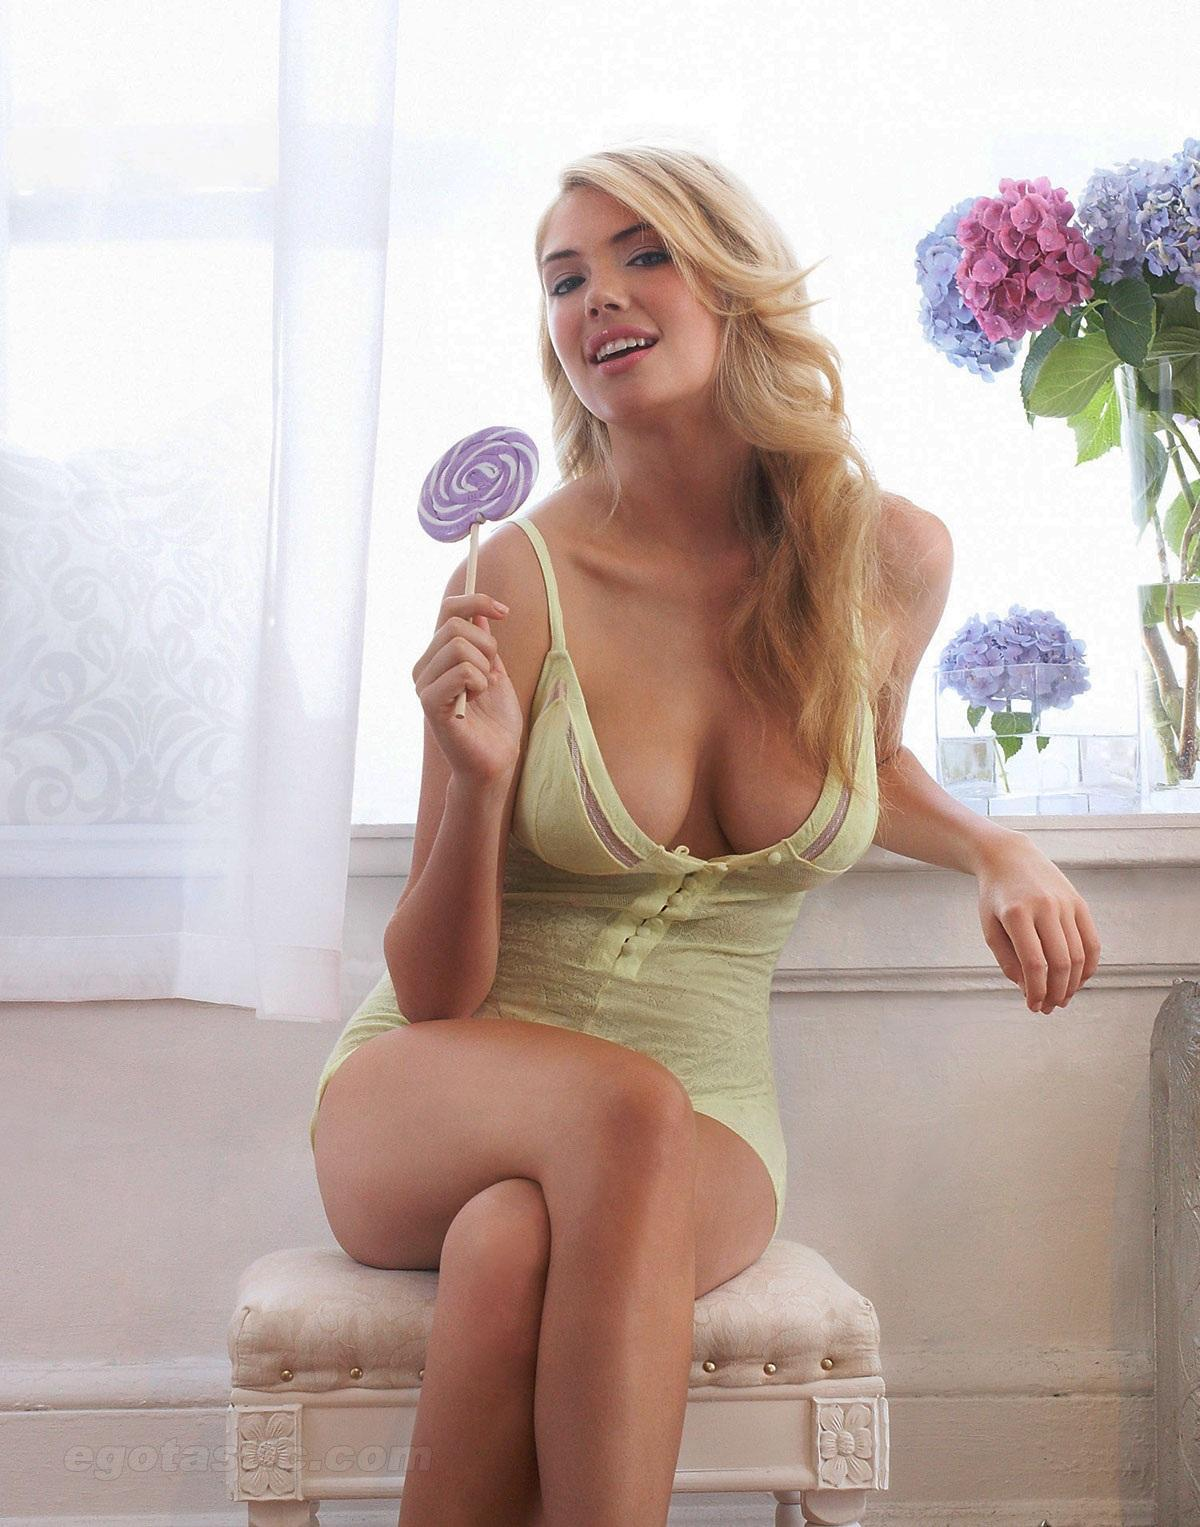 Hot celebrities kate upton feet wallpapers i hope above article help you to get your desirable wallpapers of kate upton feet wallpapers for your device and help you to make your device awesome and altavistaventures Choice Image